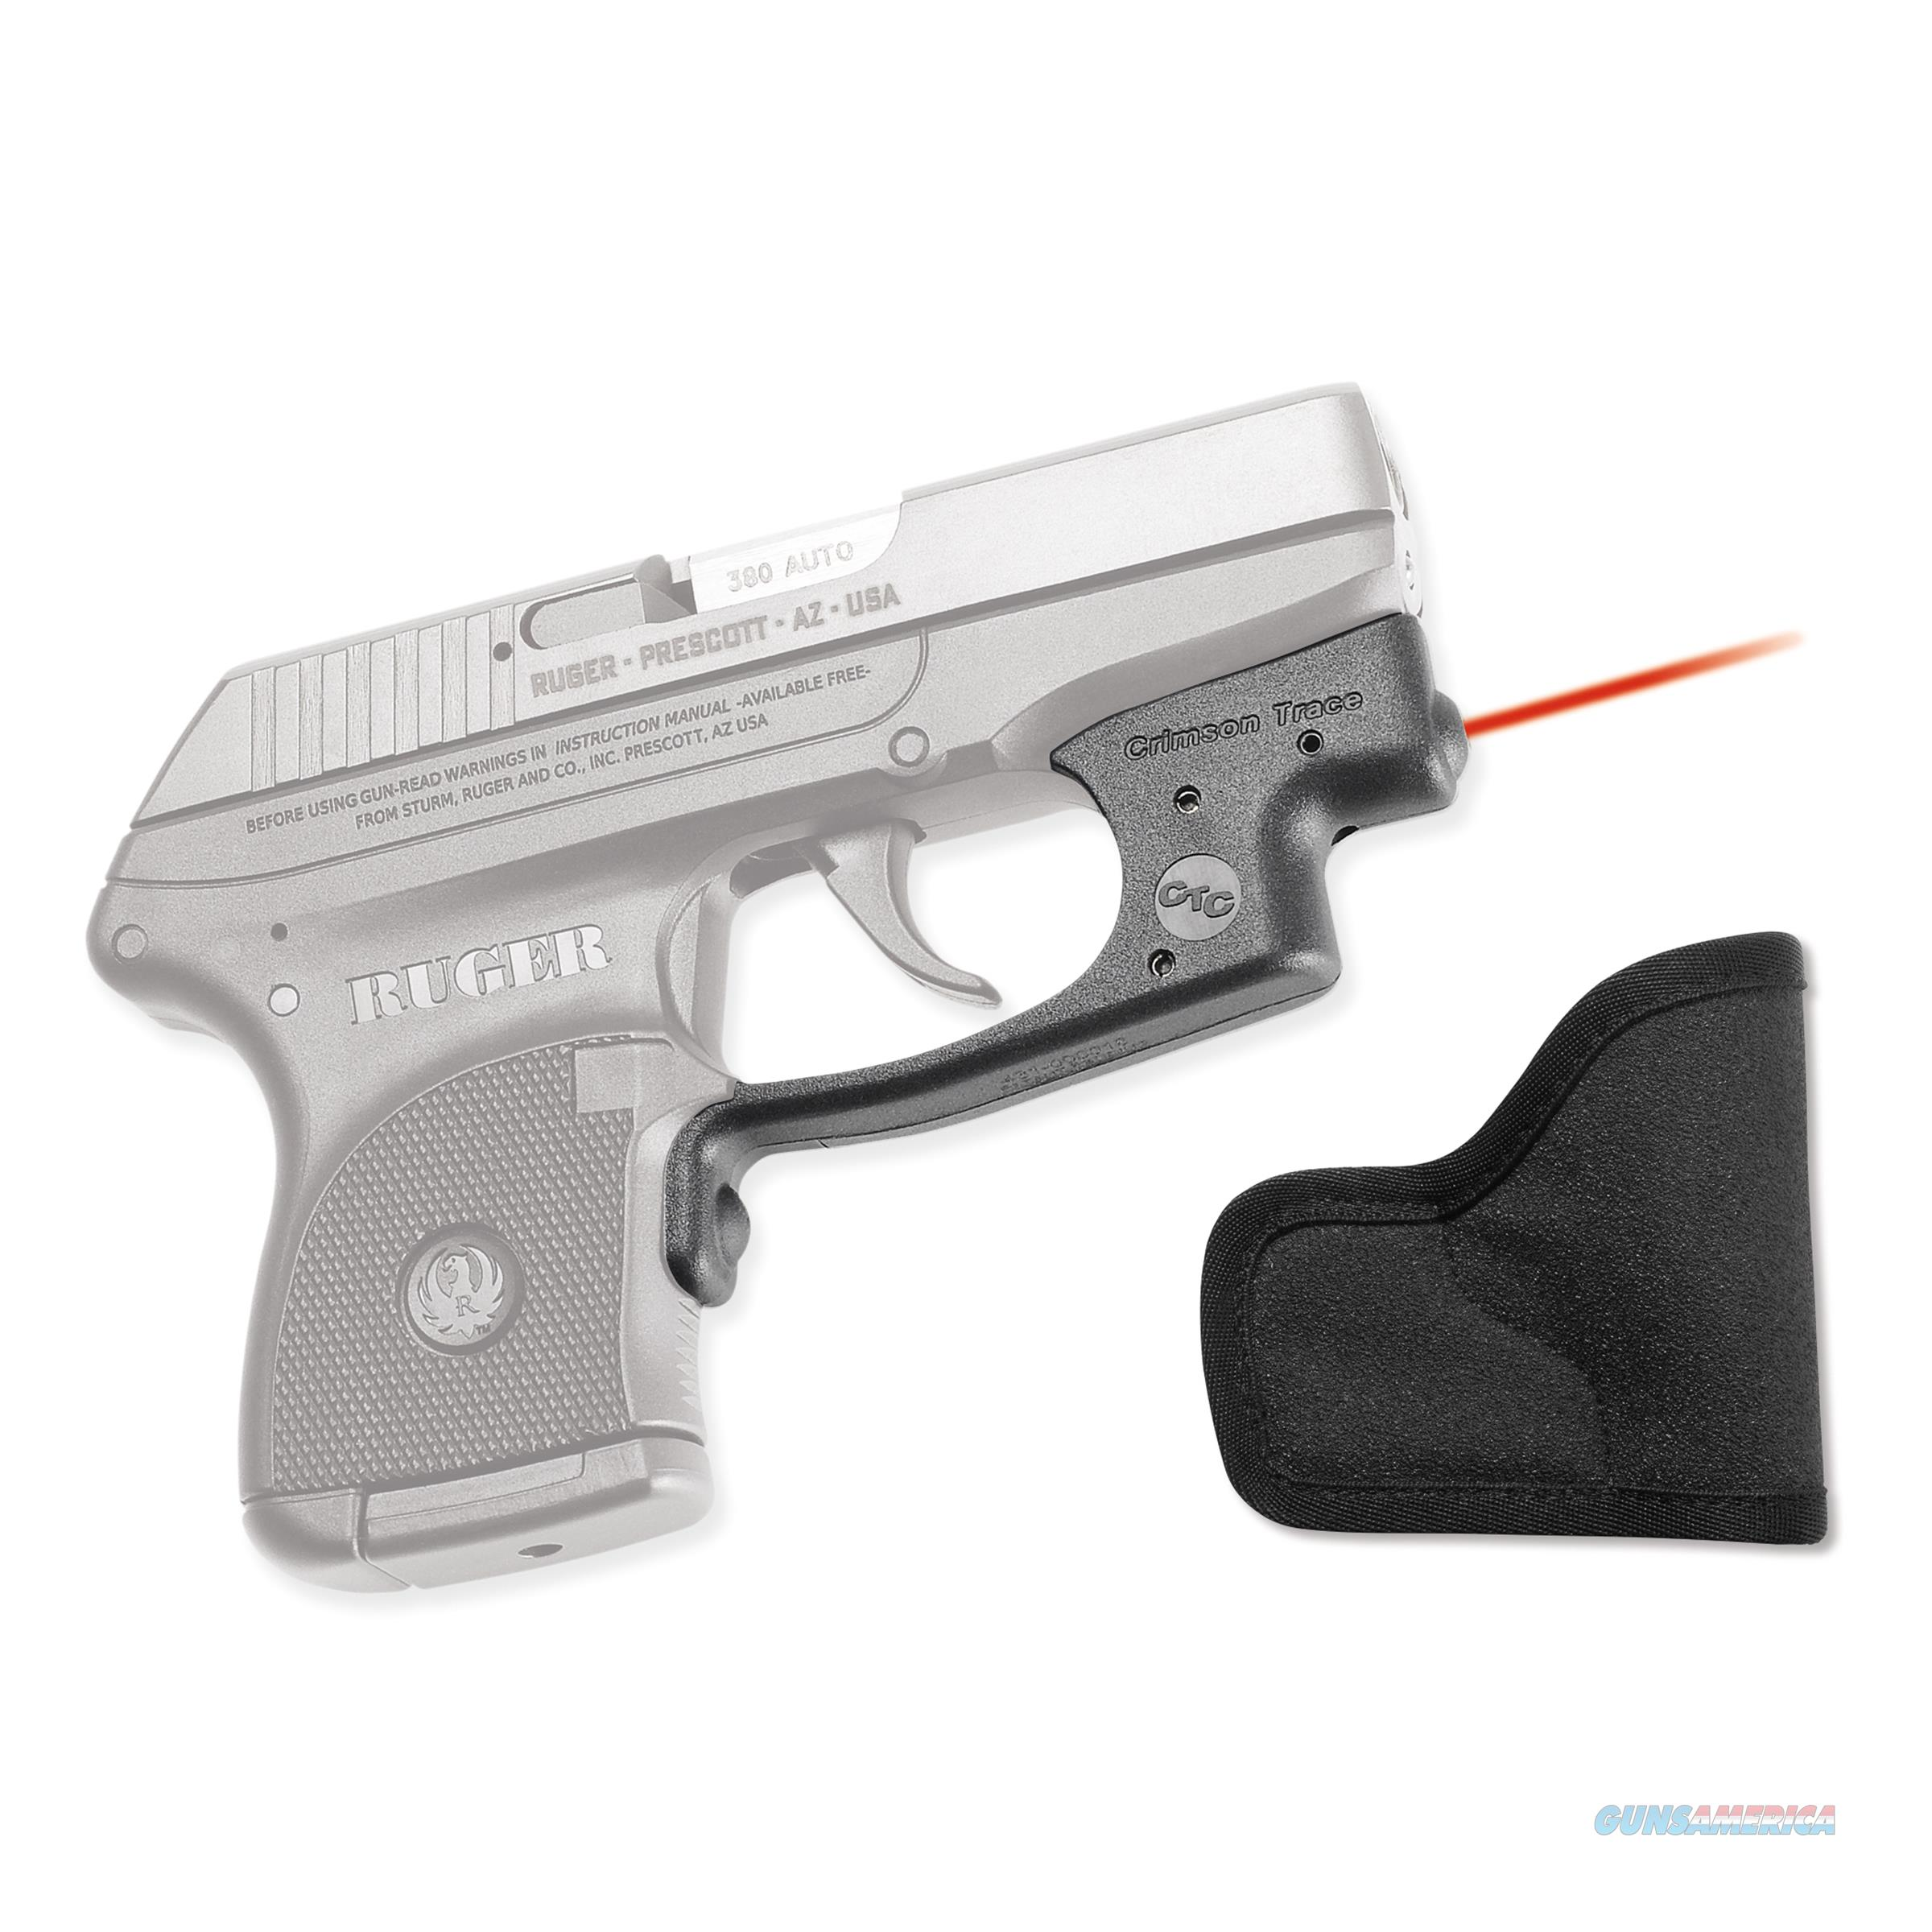 Crimson Trace Ruger LG-431-H-S  Non-Guns > Gun Parts > Misc > Rifles